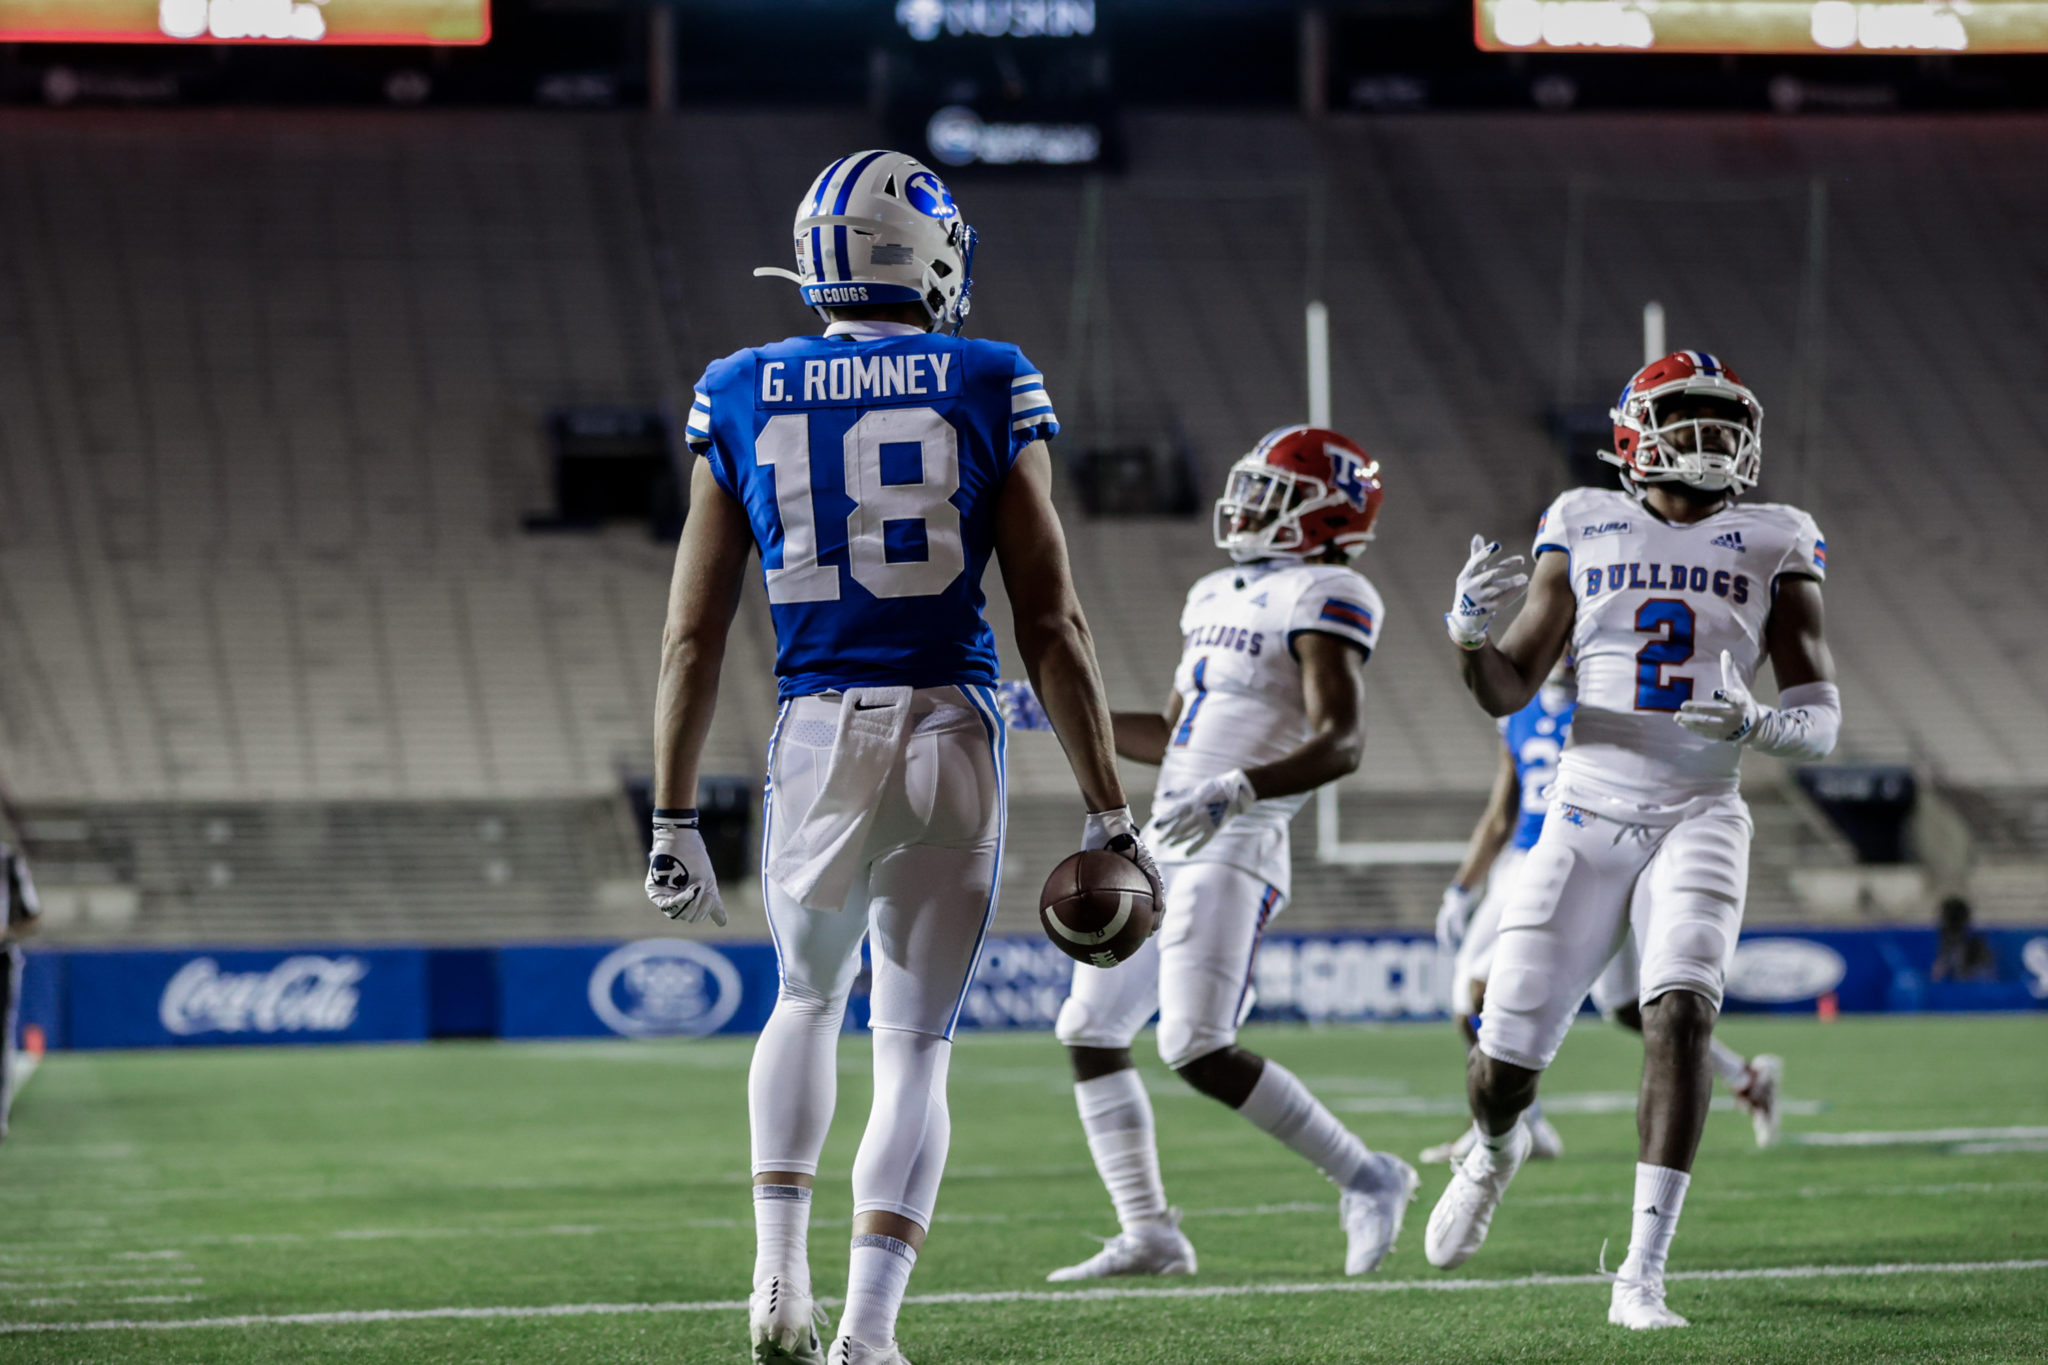 BYU Football 3-0 for the first time under Sitake after 45-14 win over LA Tech